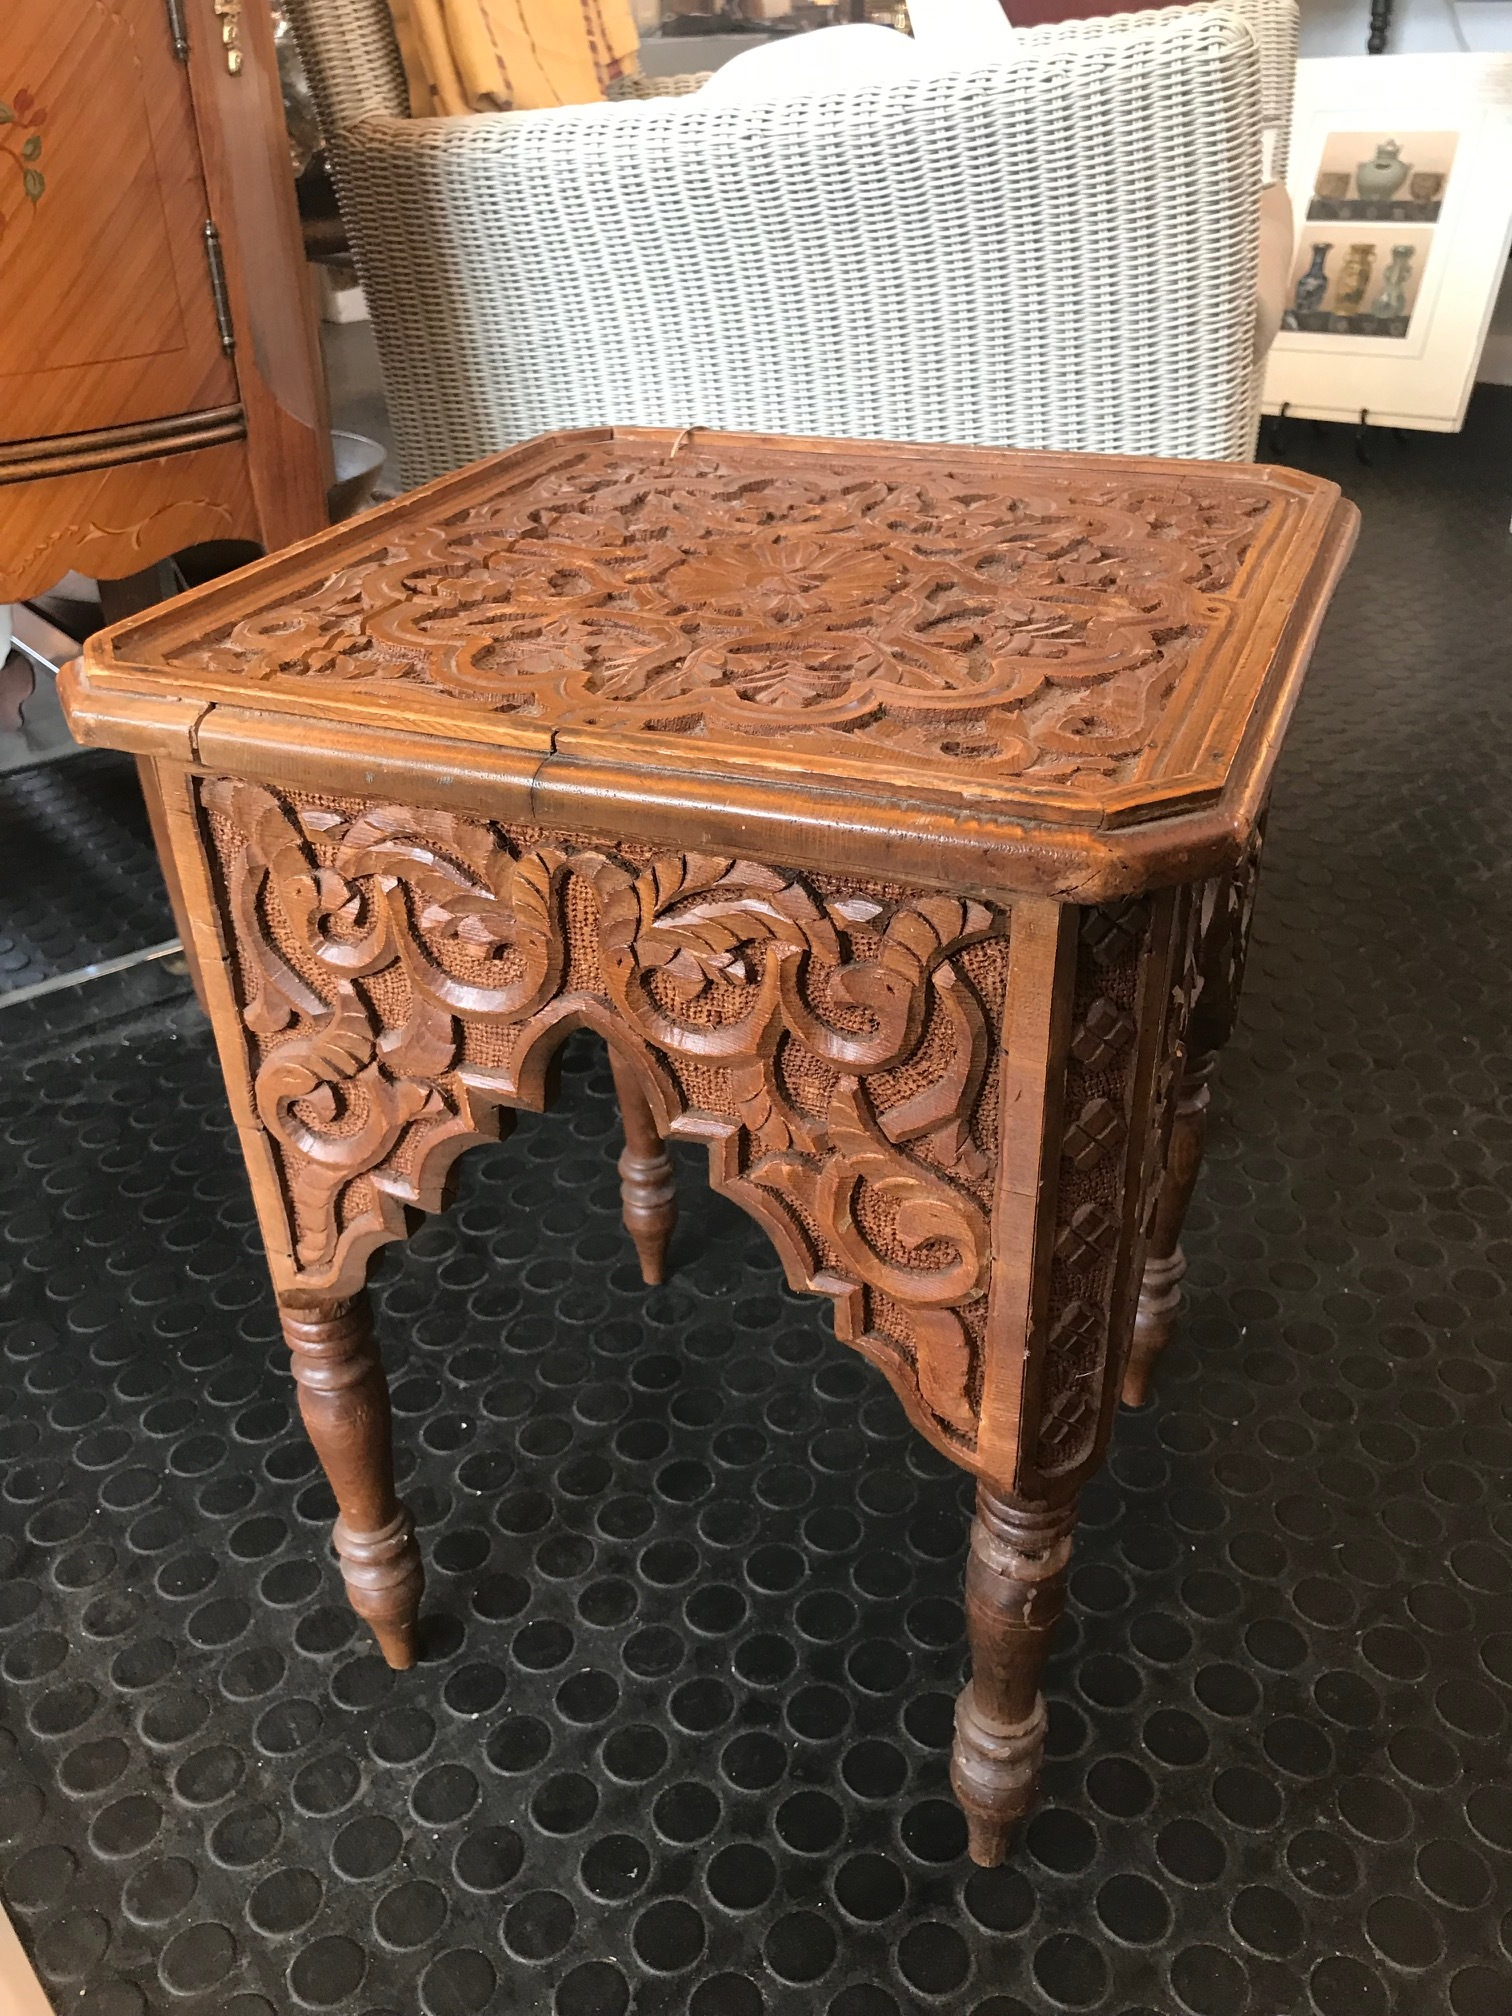 07 TURKISH TABOURET B.jpg